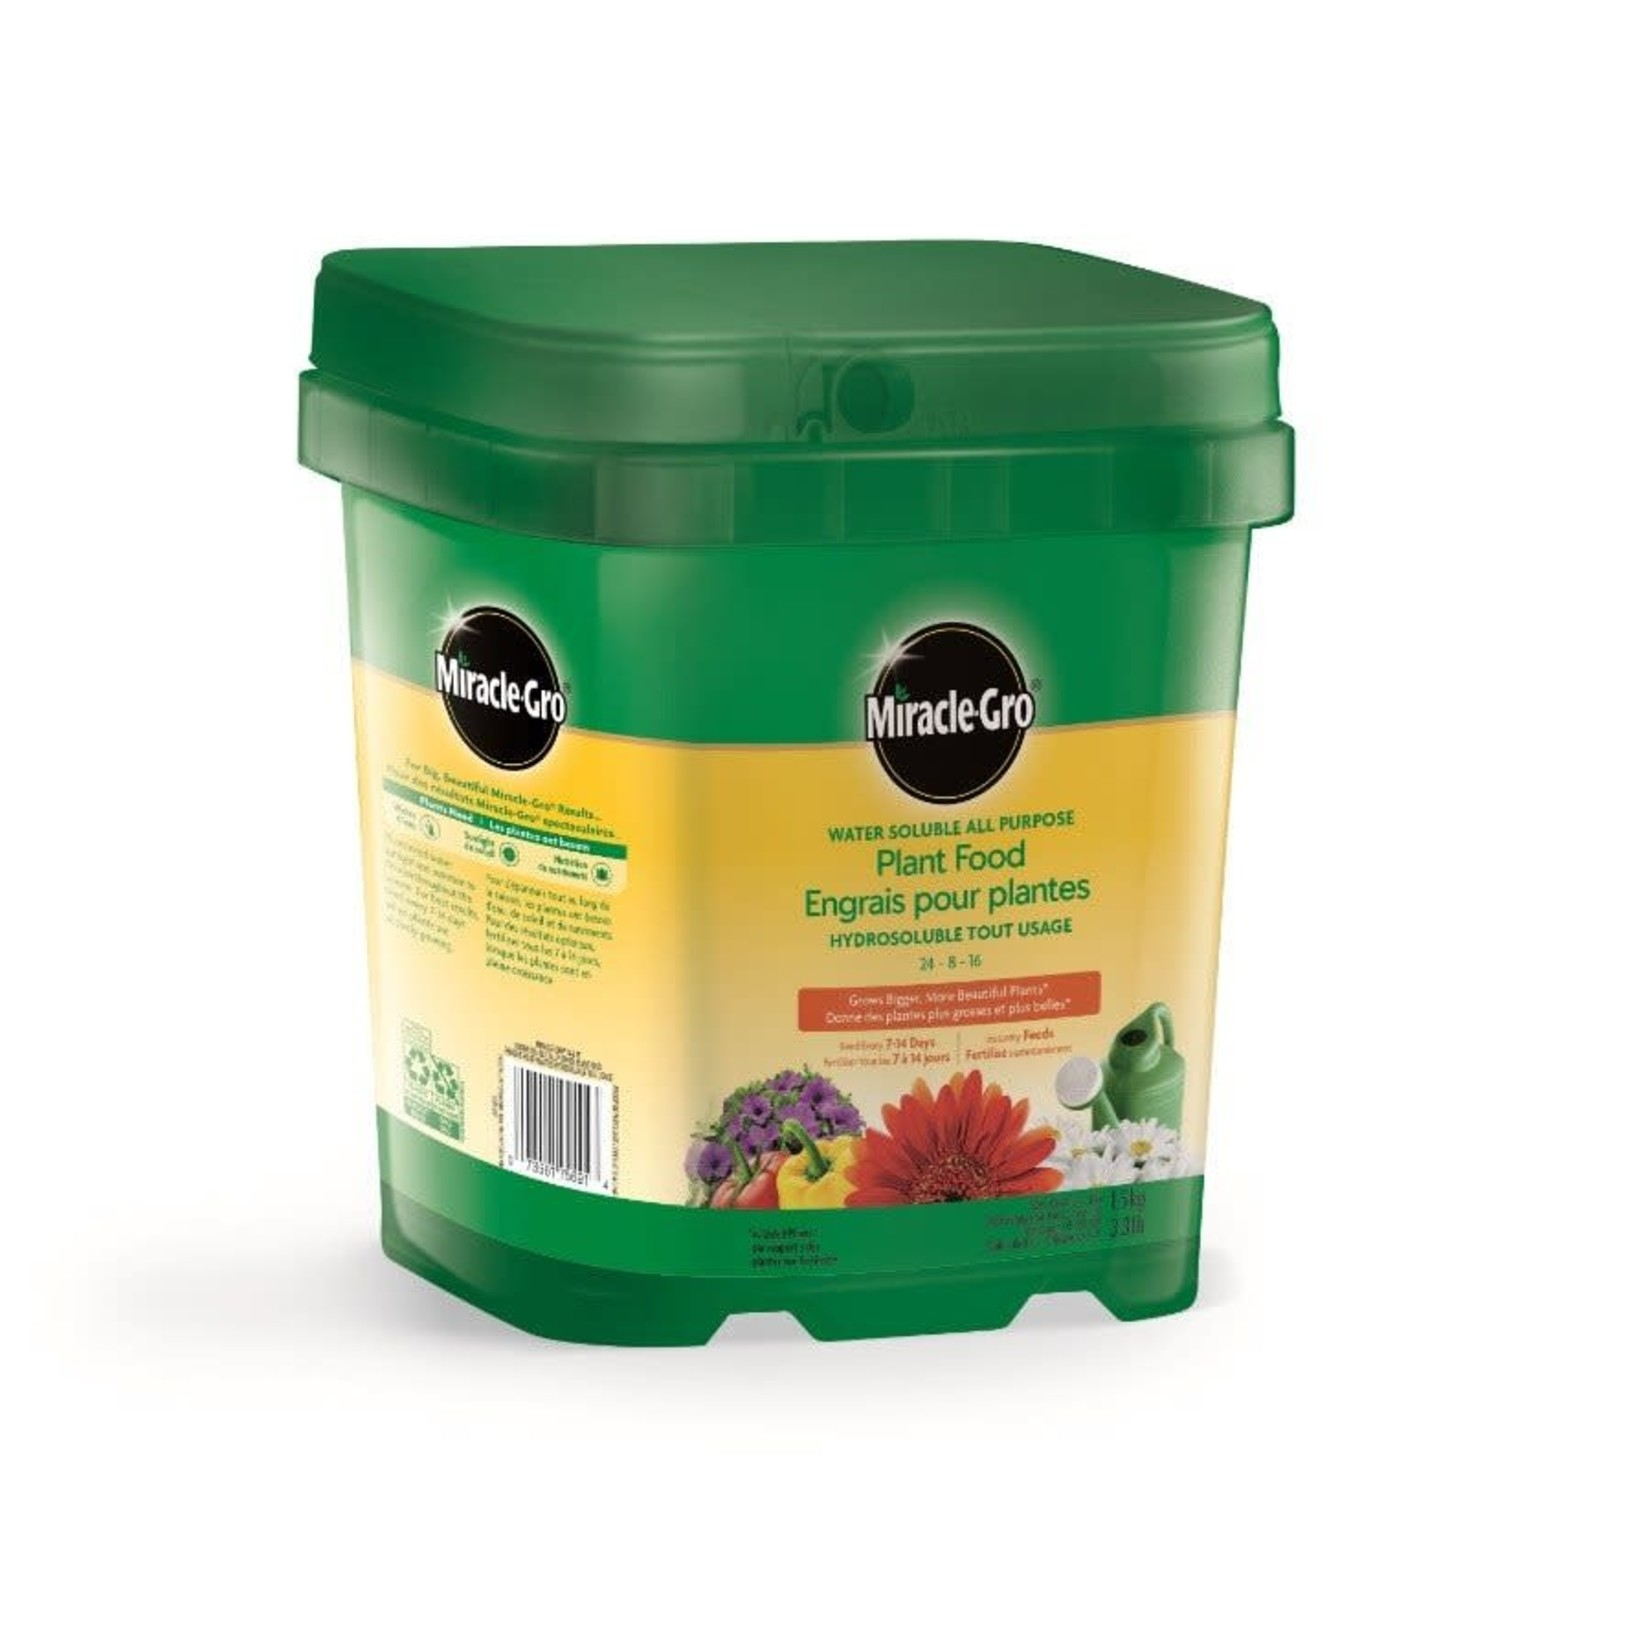 Miracle-Gro Water Sol All Purpose 24-8-16, 1.5kg